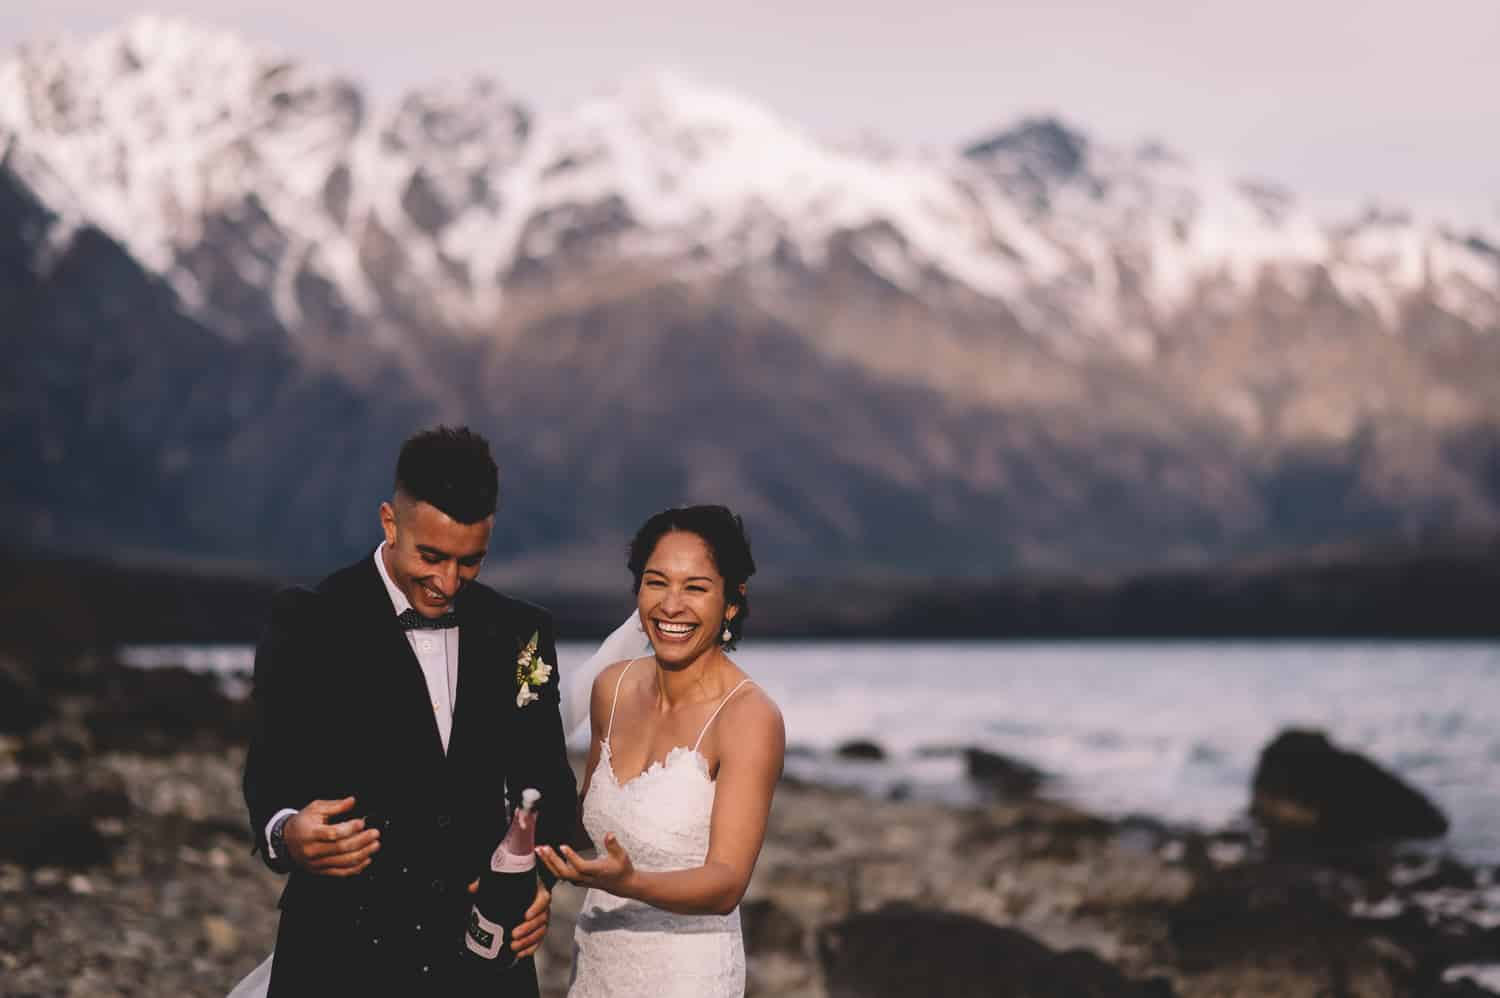 Queenstown Elopement Photography Snowy Cecil Peak Heli Wedding